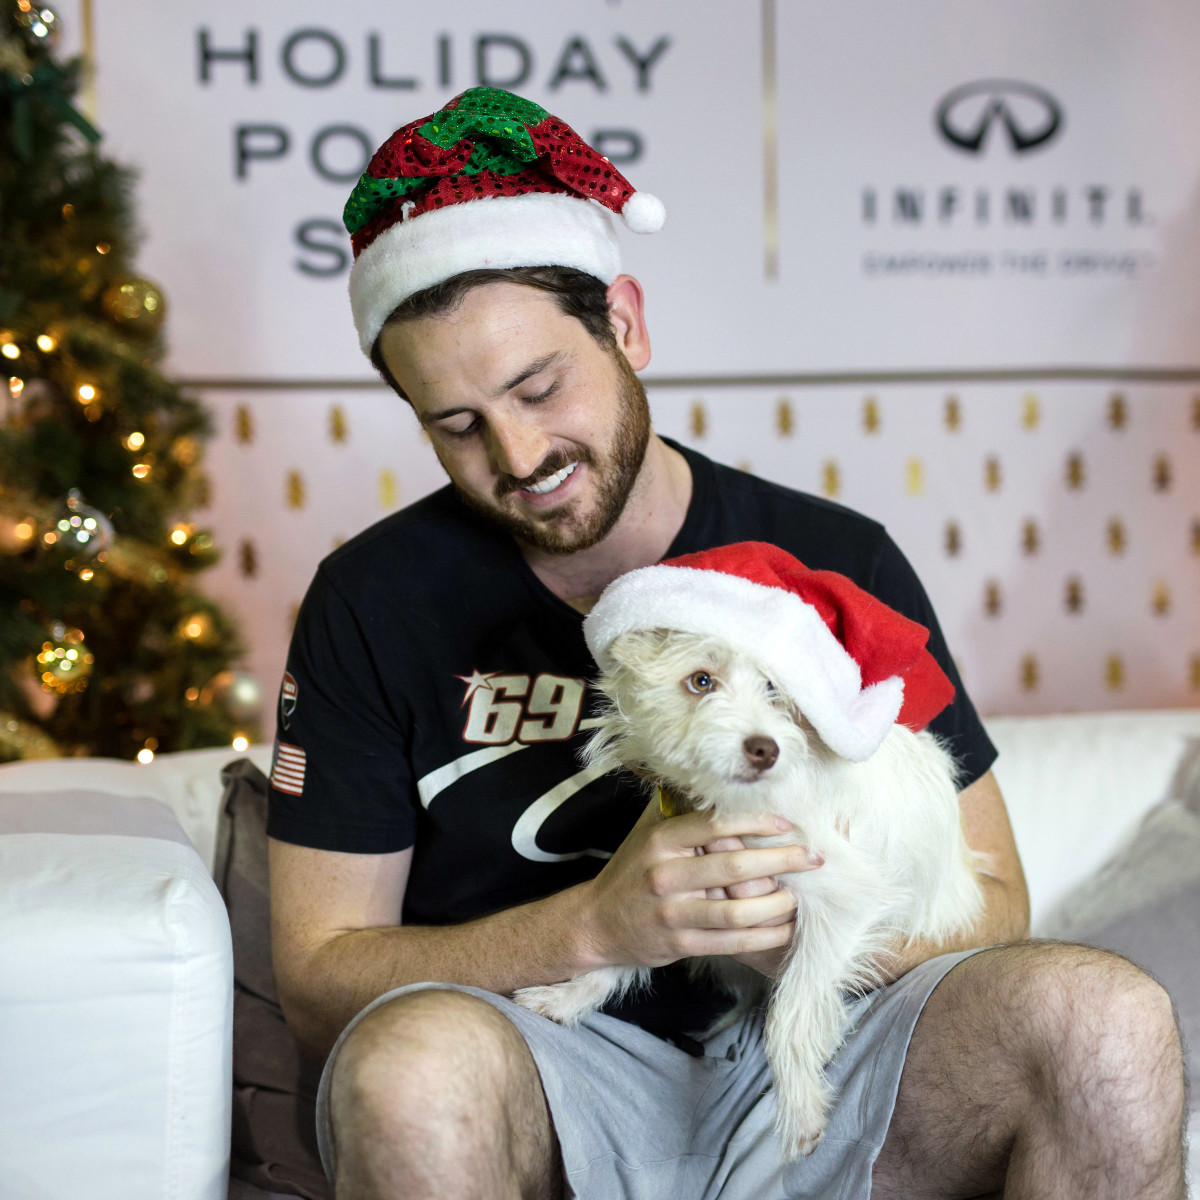 Houston, CultureMap Holiday Pop-Up Shop, November 2017, Patrick Mash, Oliver the dog